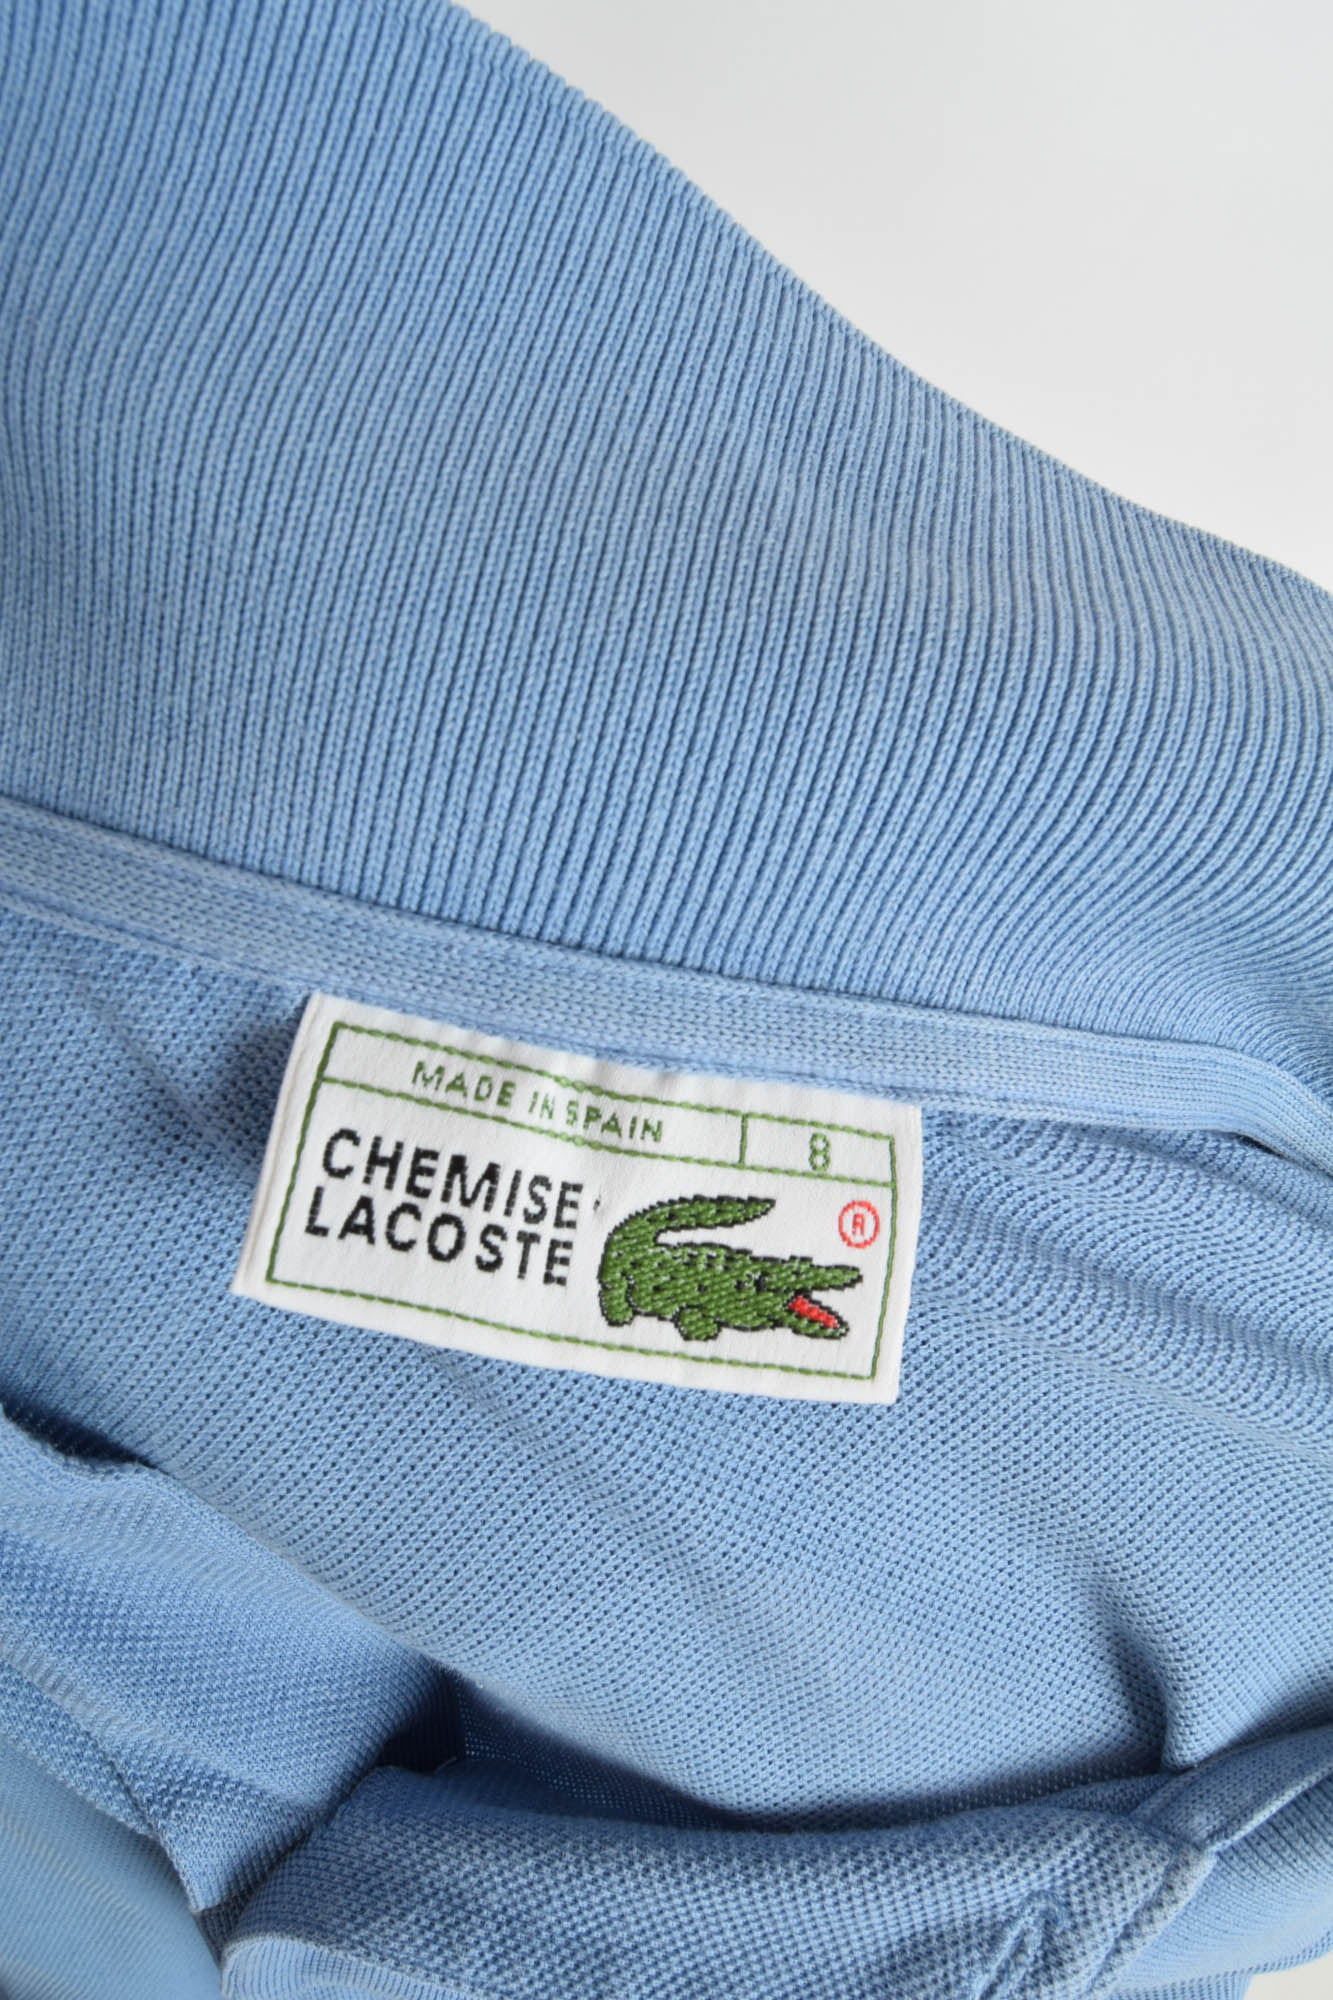 new arrivals watch how to buy Vintage Lacoste Polo T-shirt 90's Made in Spain (2640 ...